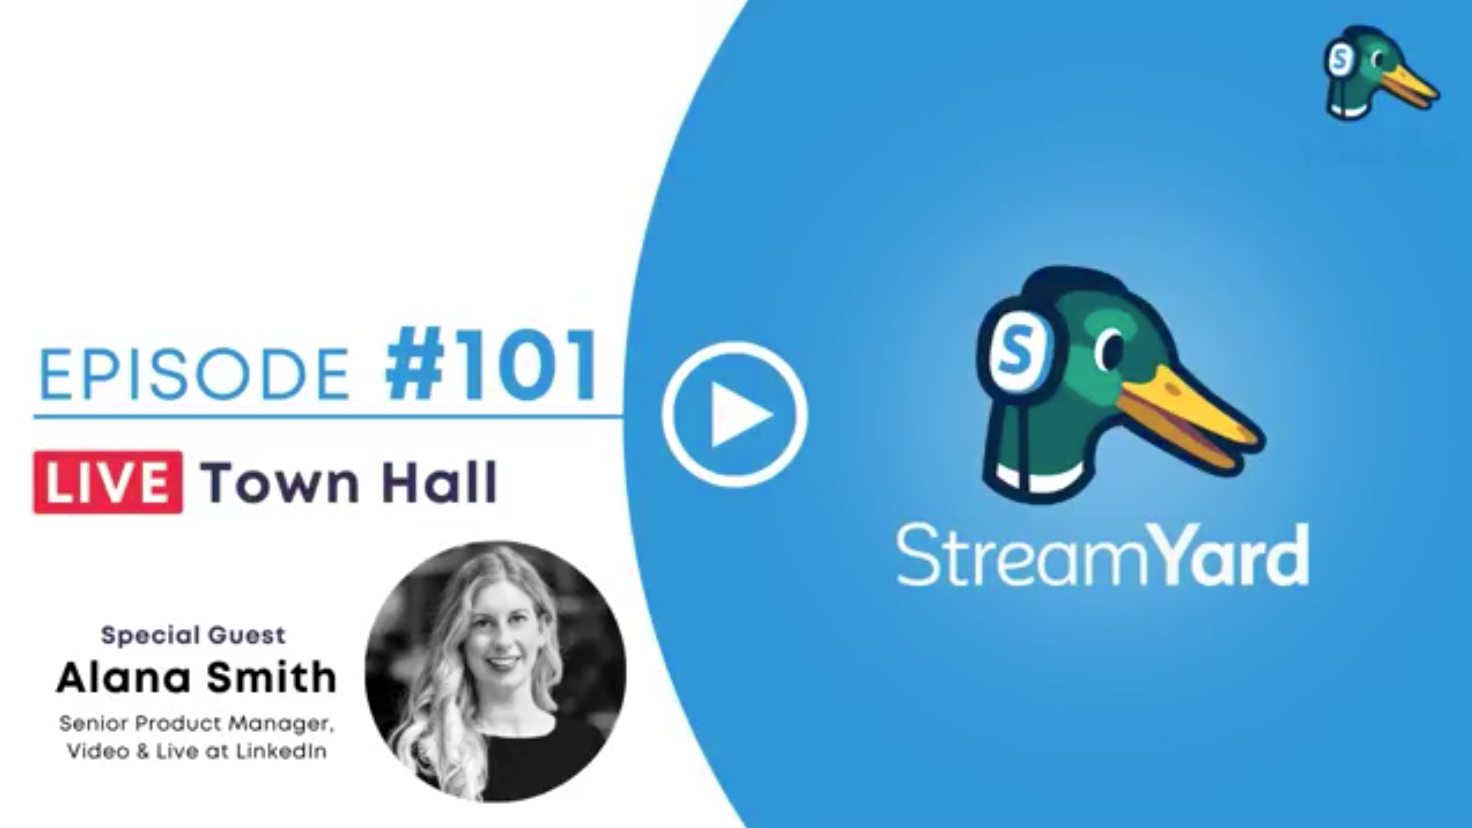 StreamYard Town Hall Episode 101 Special guest! Alana Smith Senior Product Manager for Video & Live at LinkedIn